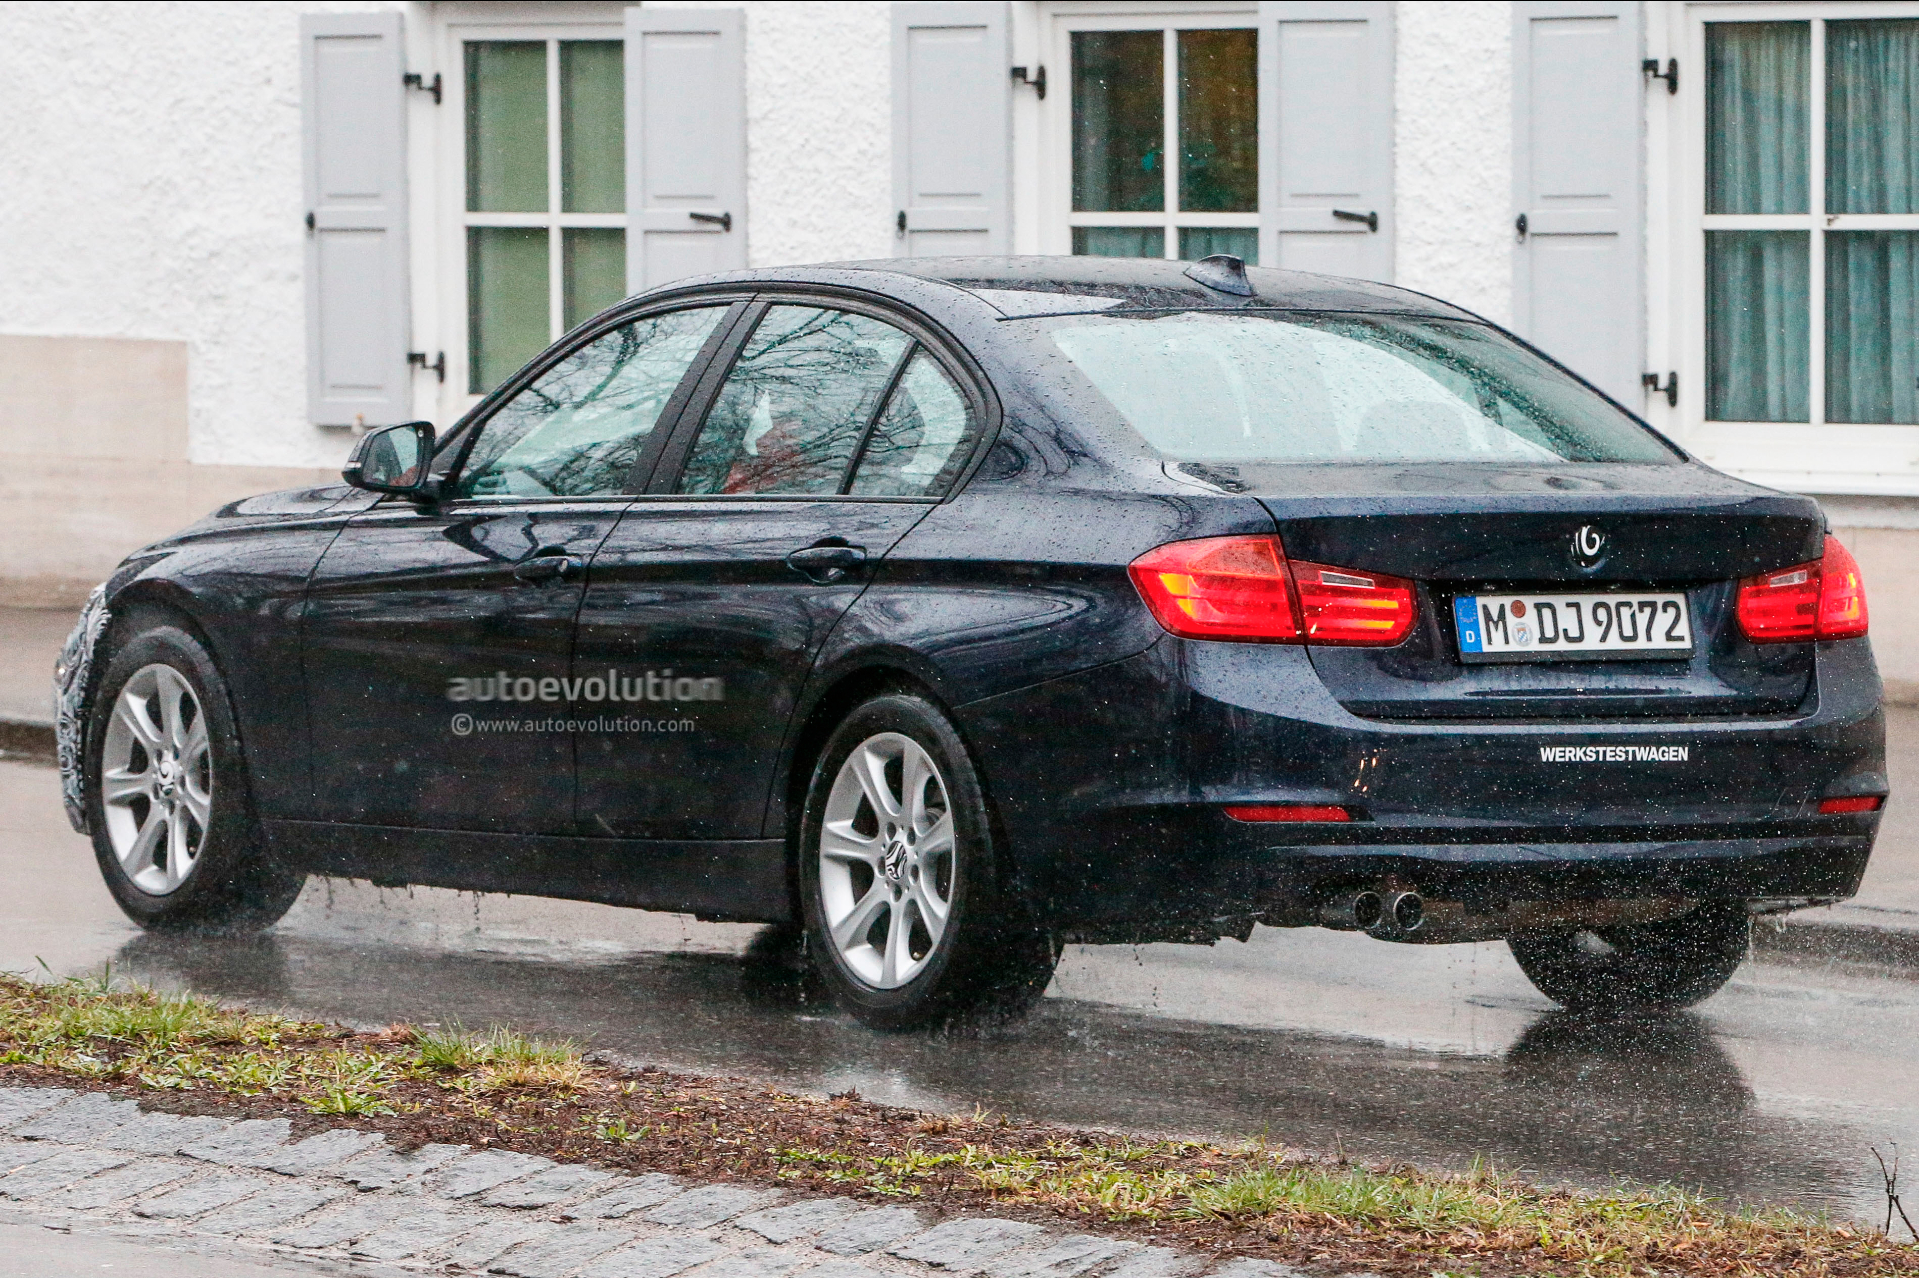 spyshots lci bmw f30 3 series spotted for the first time autoevolution. Black Bedroom Furniture Sets. Home Design Ideas